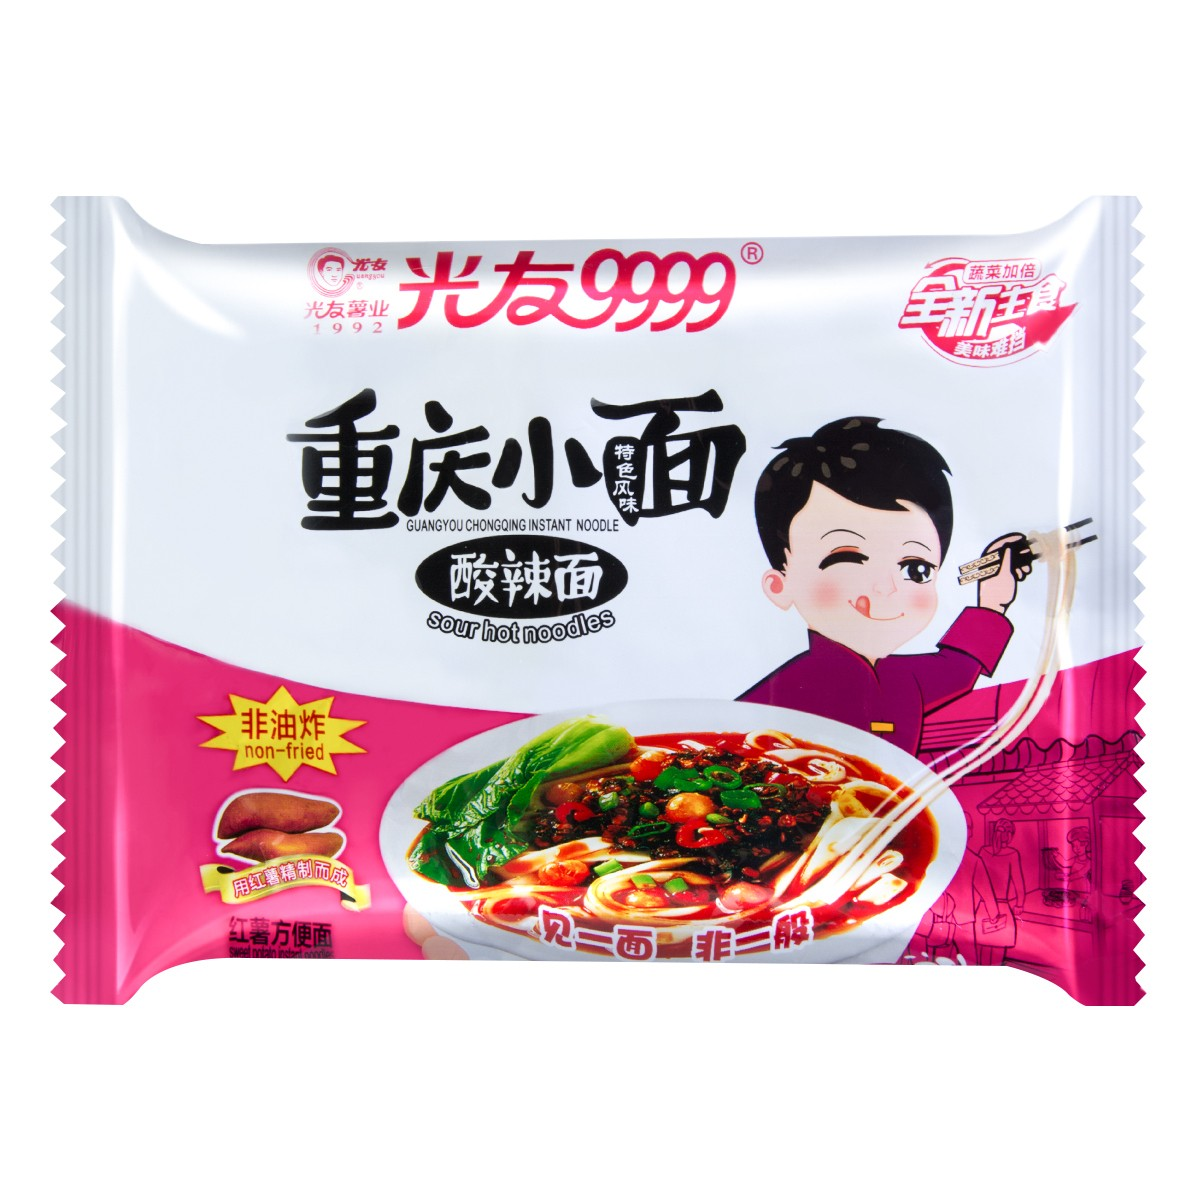 GUANGYOU Spicy Hot Noodles Hot  Sour  Flavor 110g